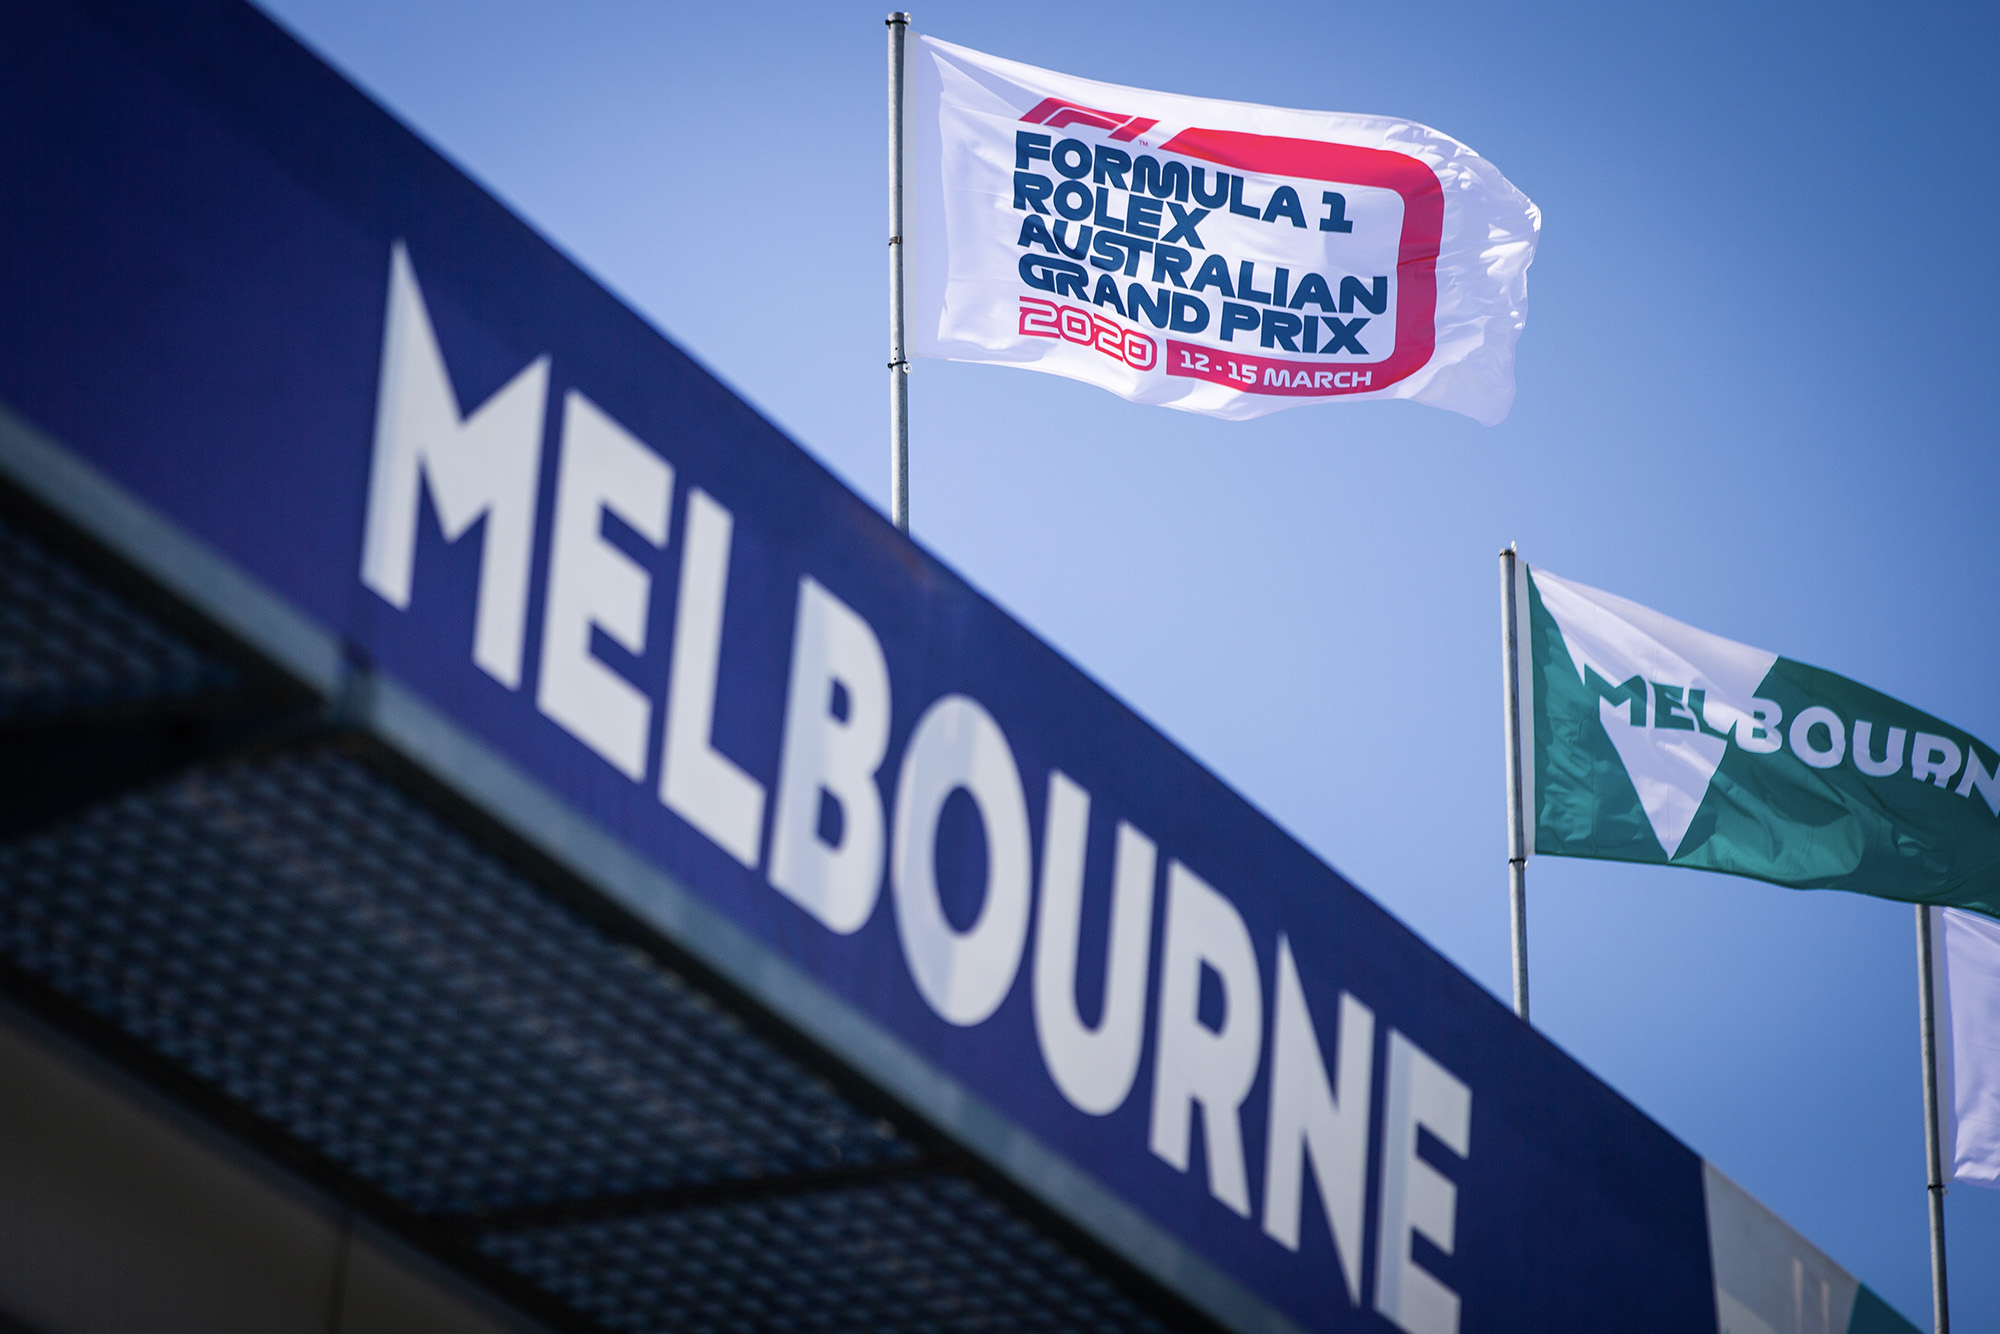 Flags above a Melbourne grandstand ahead of the 2020 Australian Grand Prix